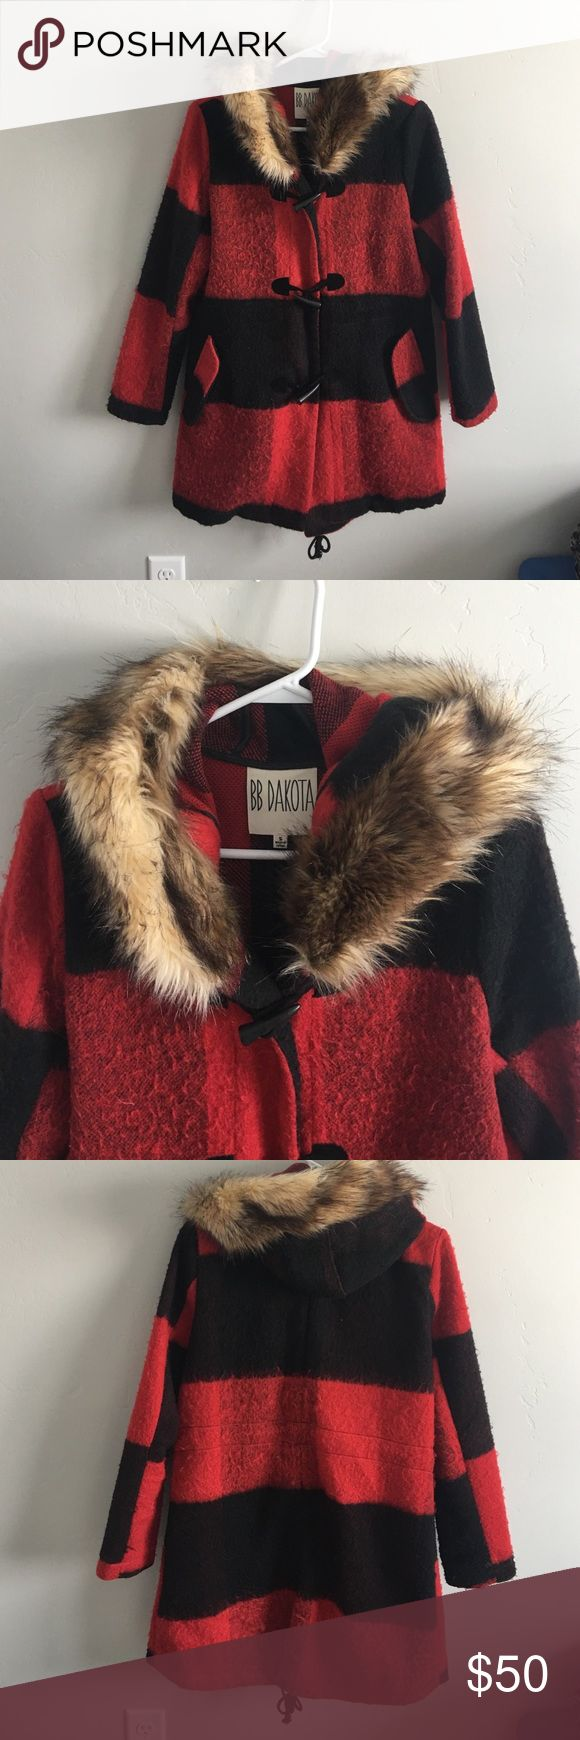 BB Dakota buffalo check trench coat Like new trench coat. Only worn once! Warm, soft, and cute. BB Dakota Jackets & Coats Trench Coats